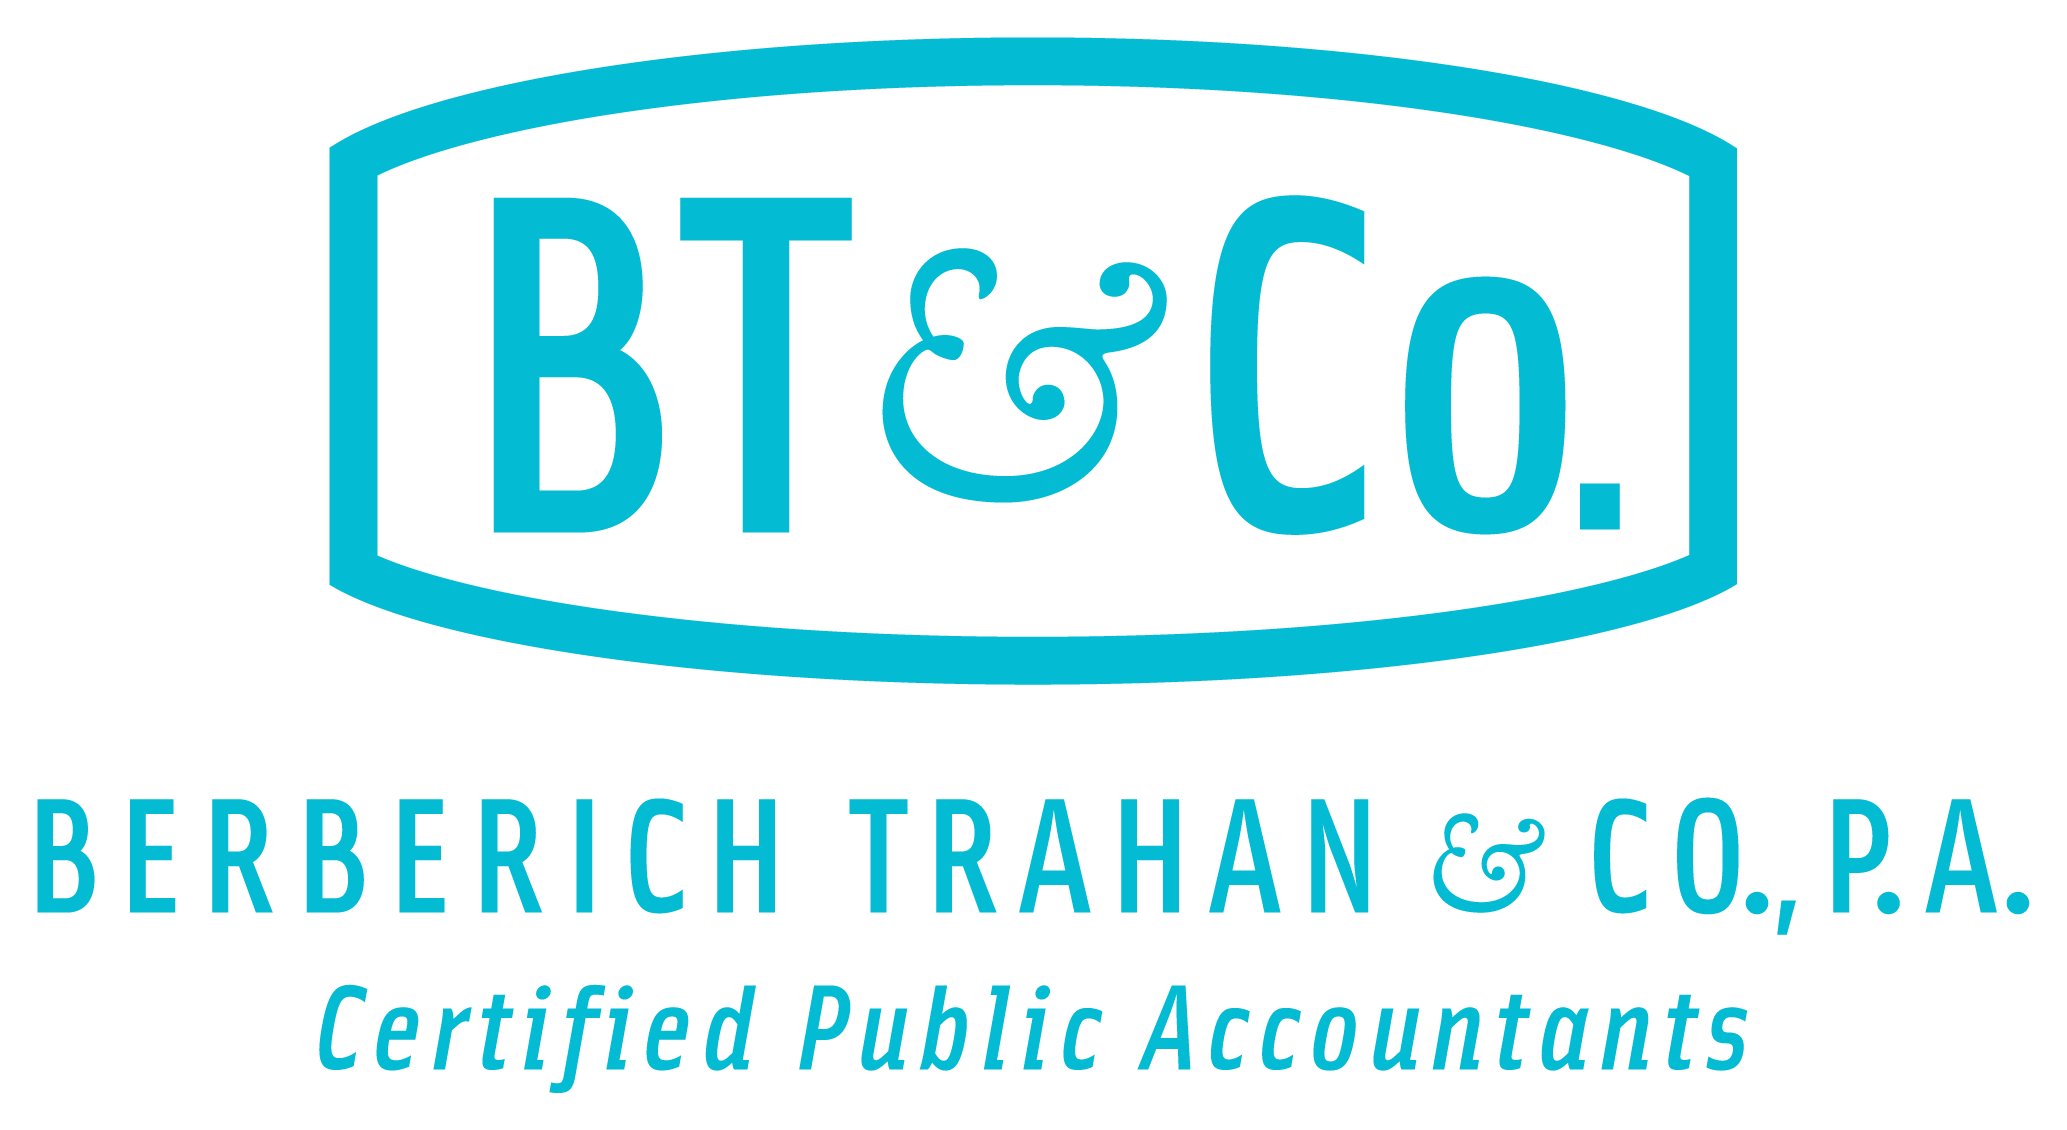 BT & Co. - Berberich Trahah & Co., P.A.